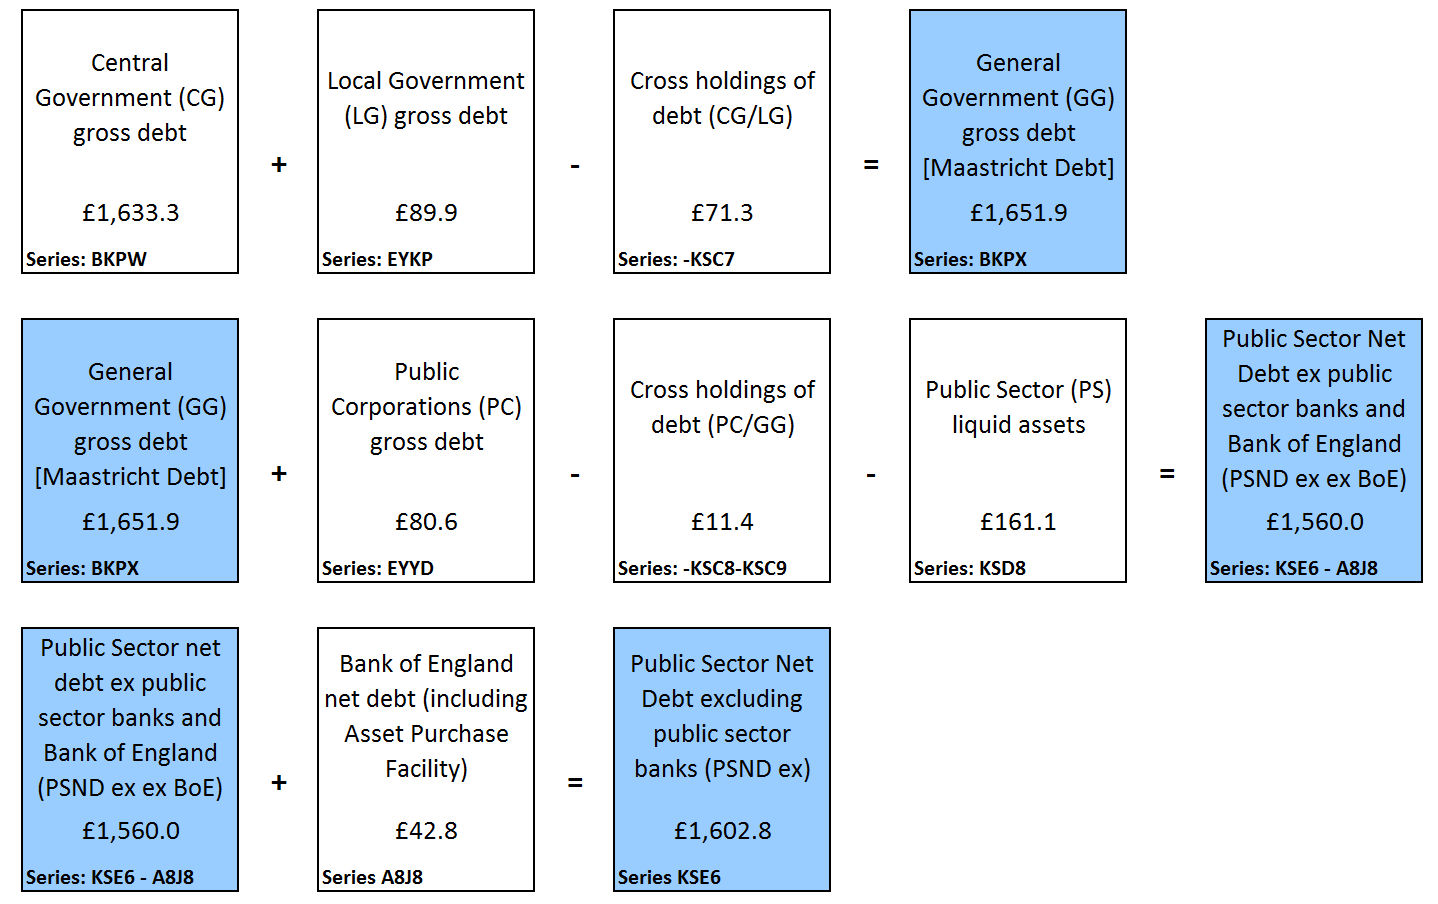 Presents components of public sector net debt excluding public sector banks and Bank of England at the end of March 2016